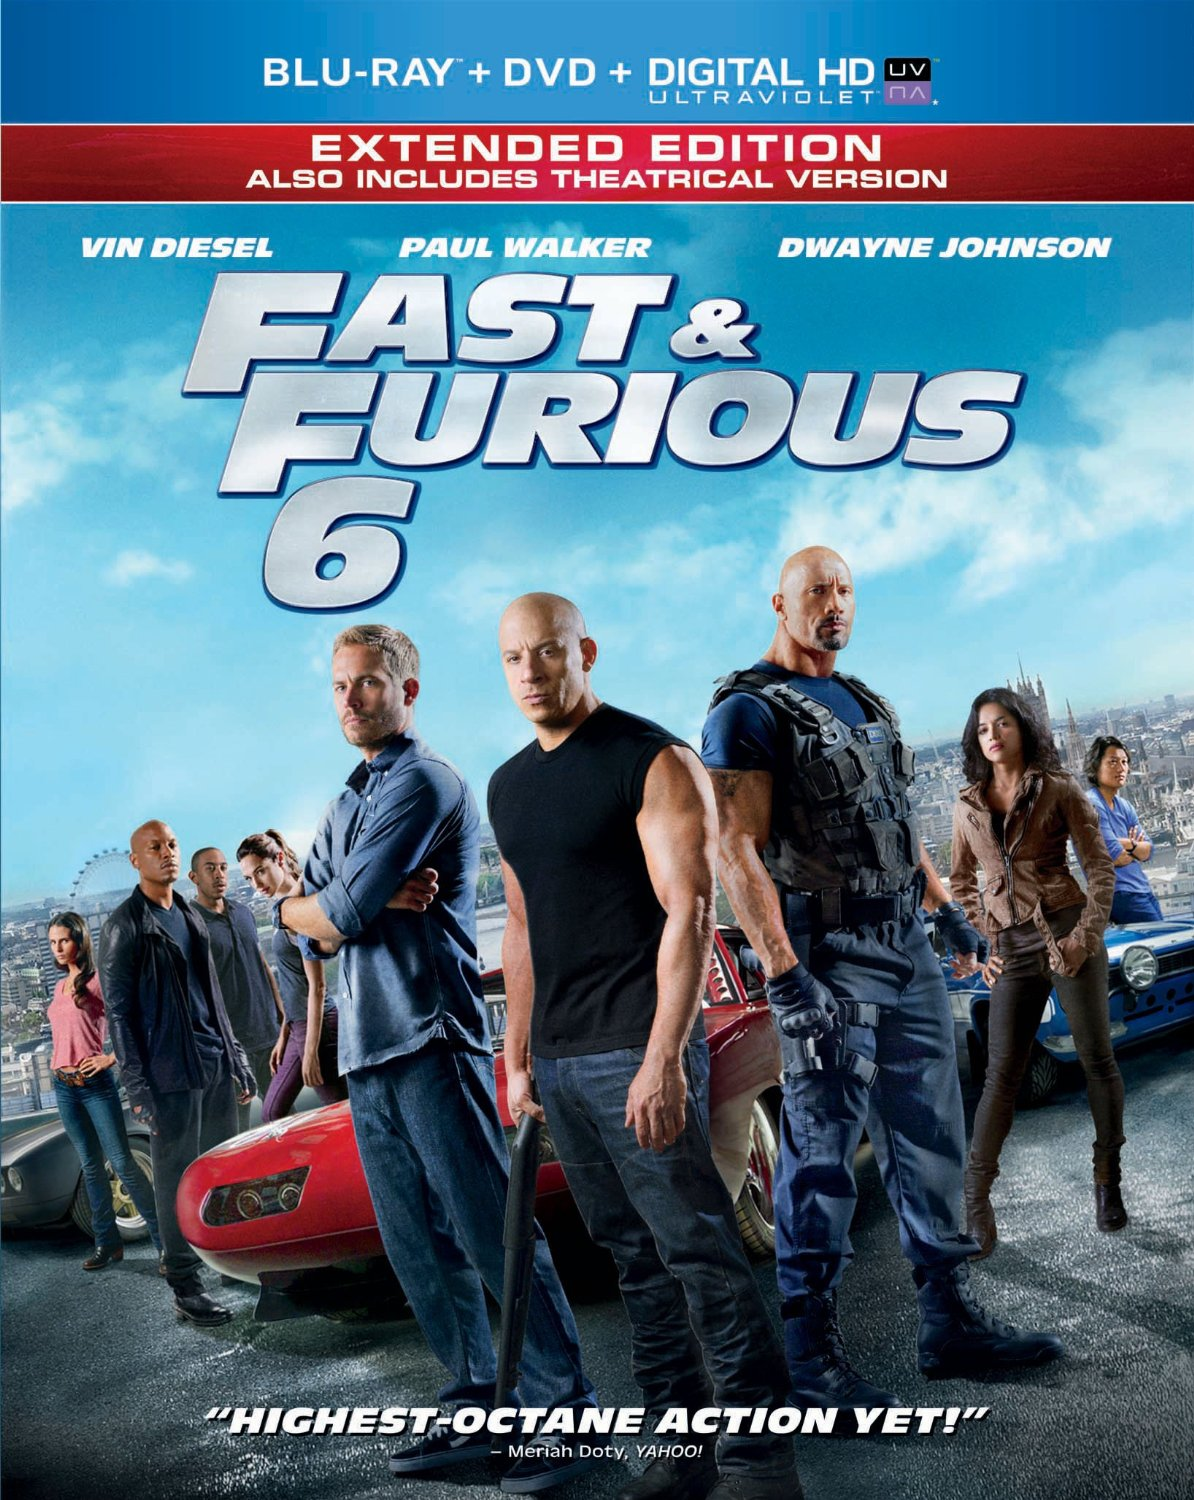 The 'Fast & Furious 6' Blu-ray Has a Scene From 'Fast & Furious 7' That Raises the Stakes Big T...